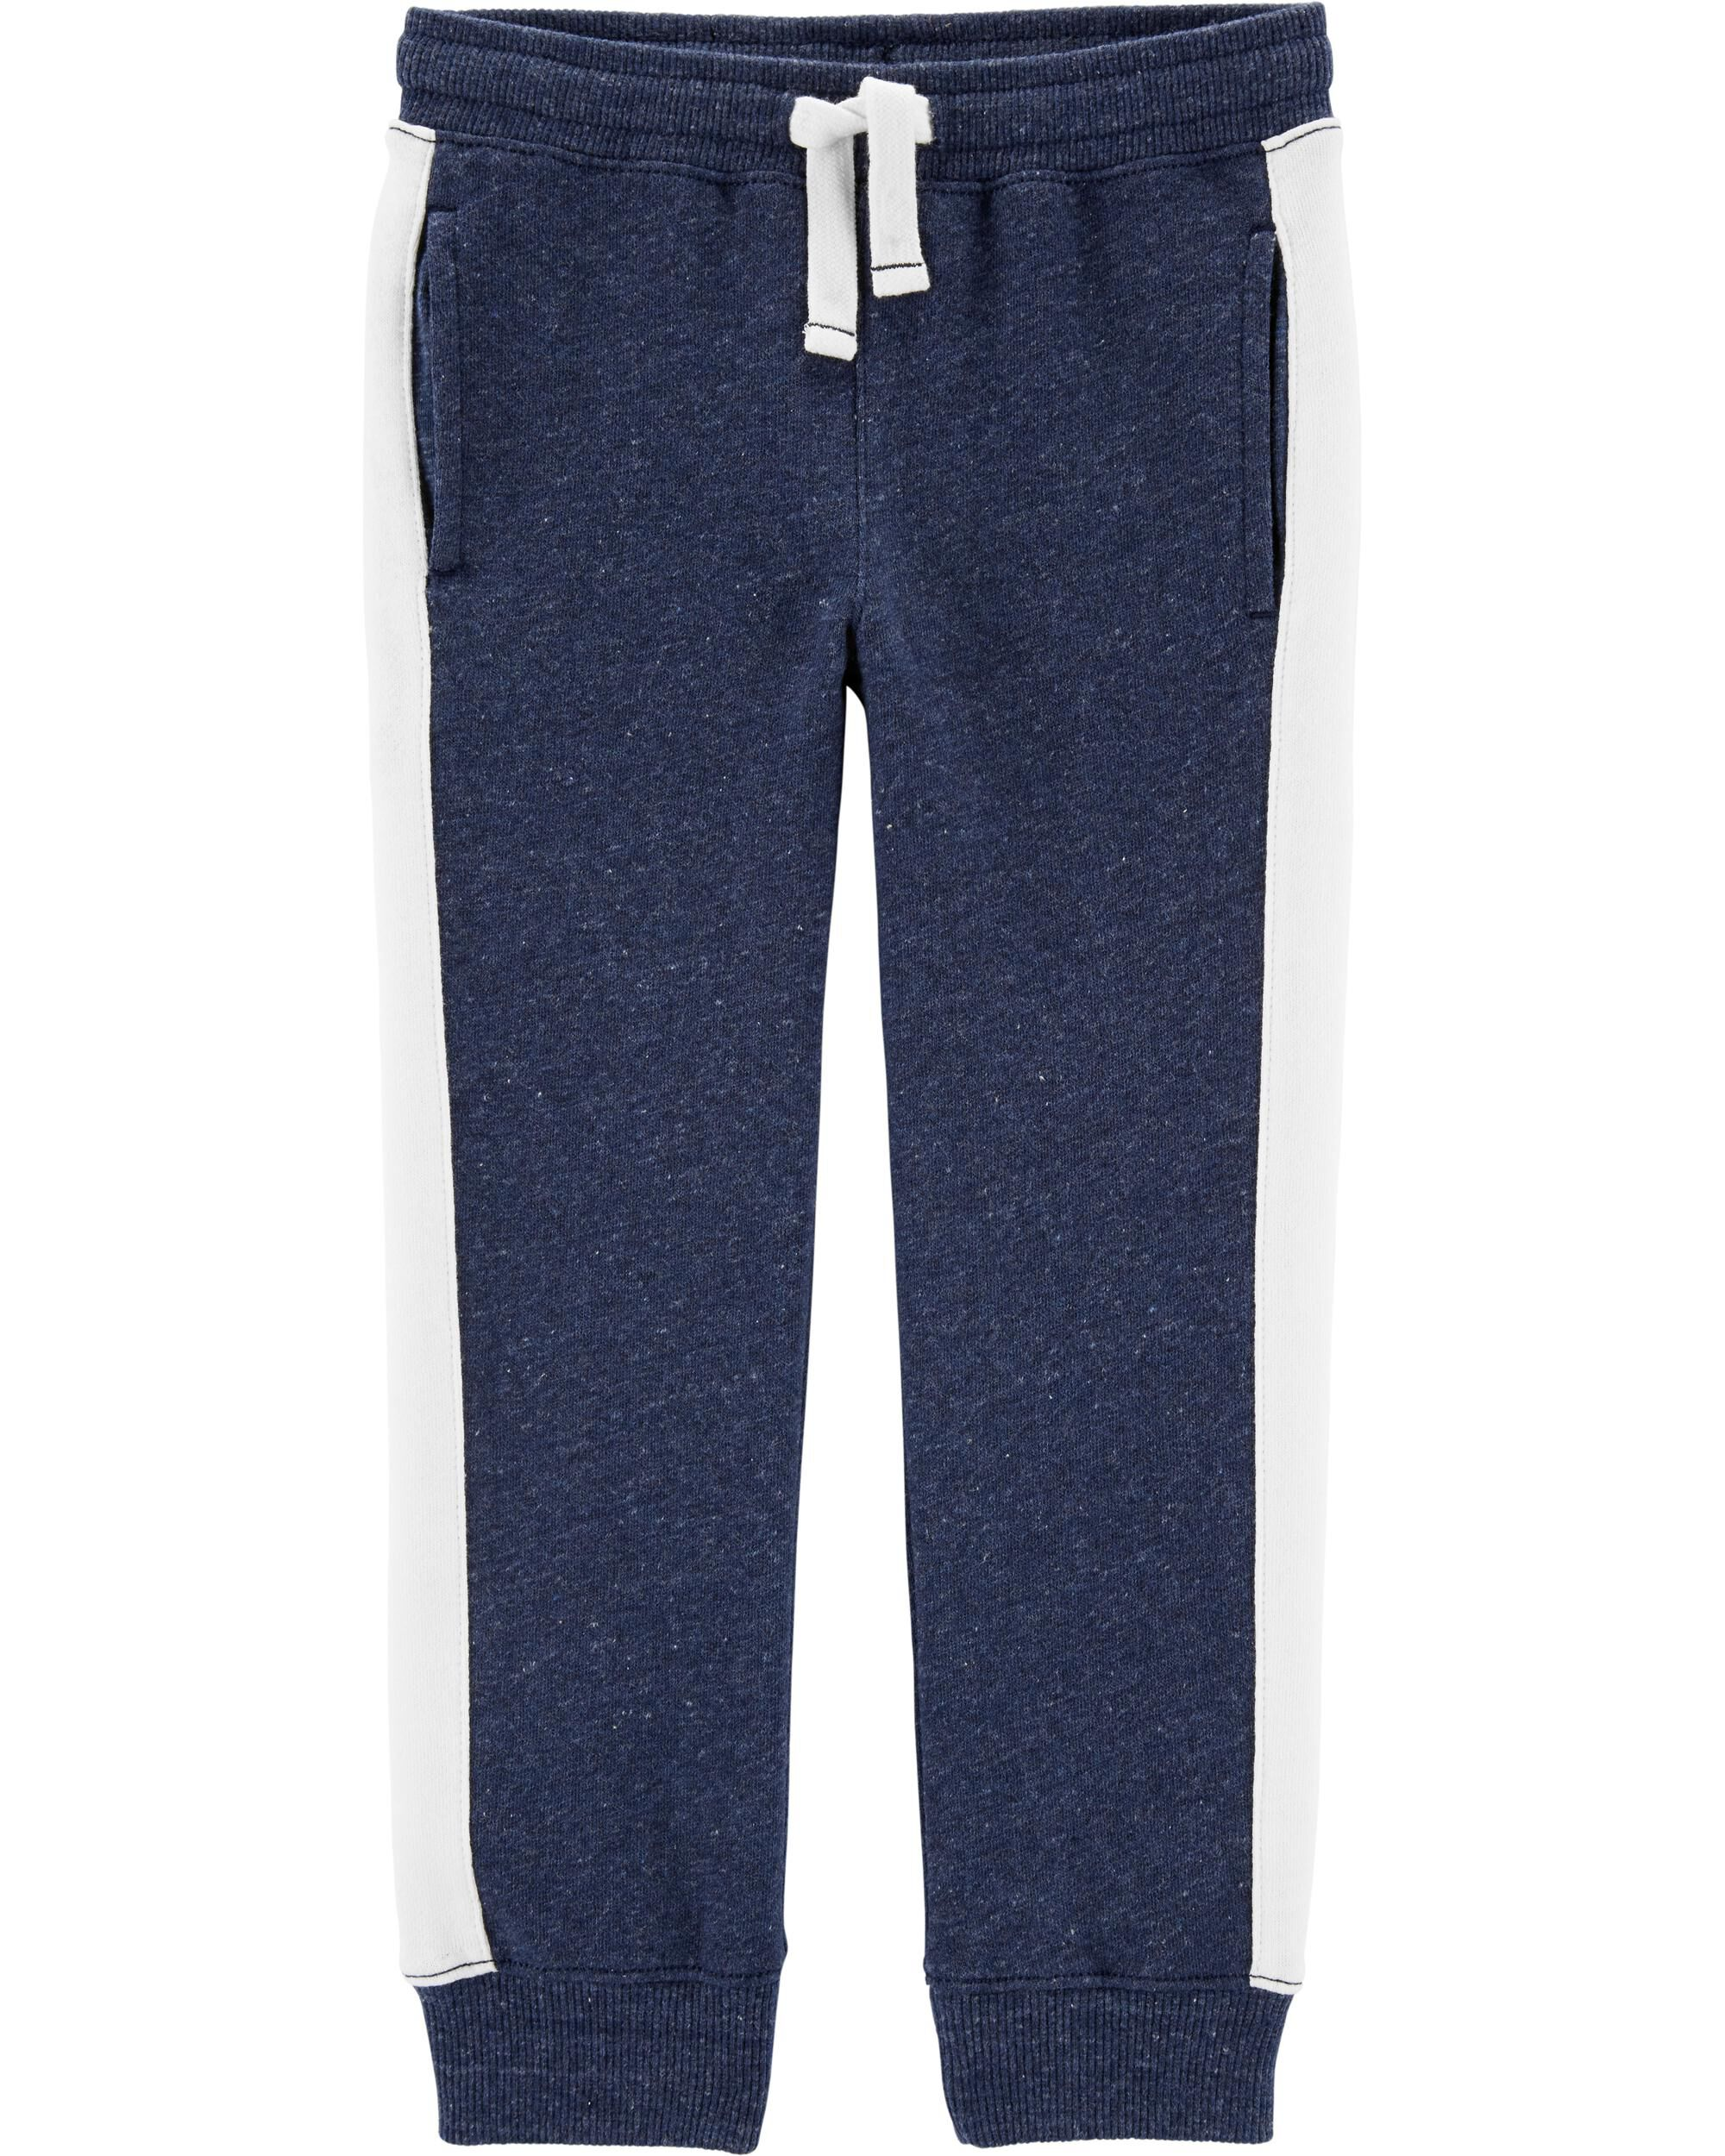 Carters Baby Boys French Terry Pants 12m, Black